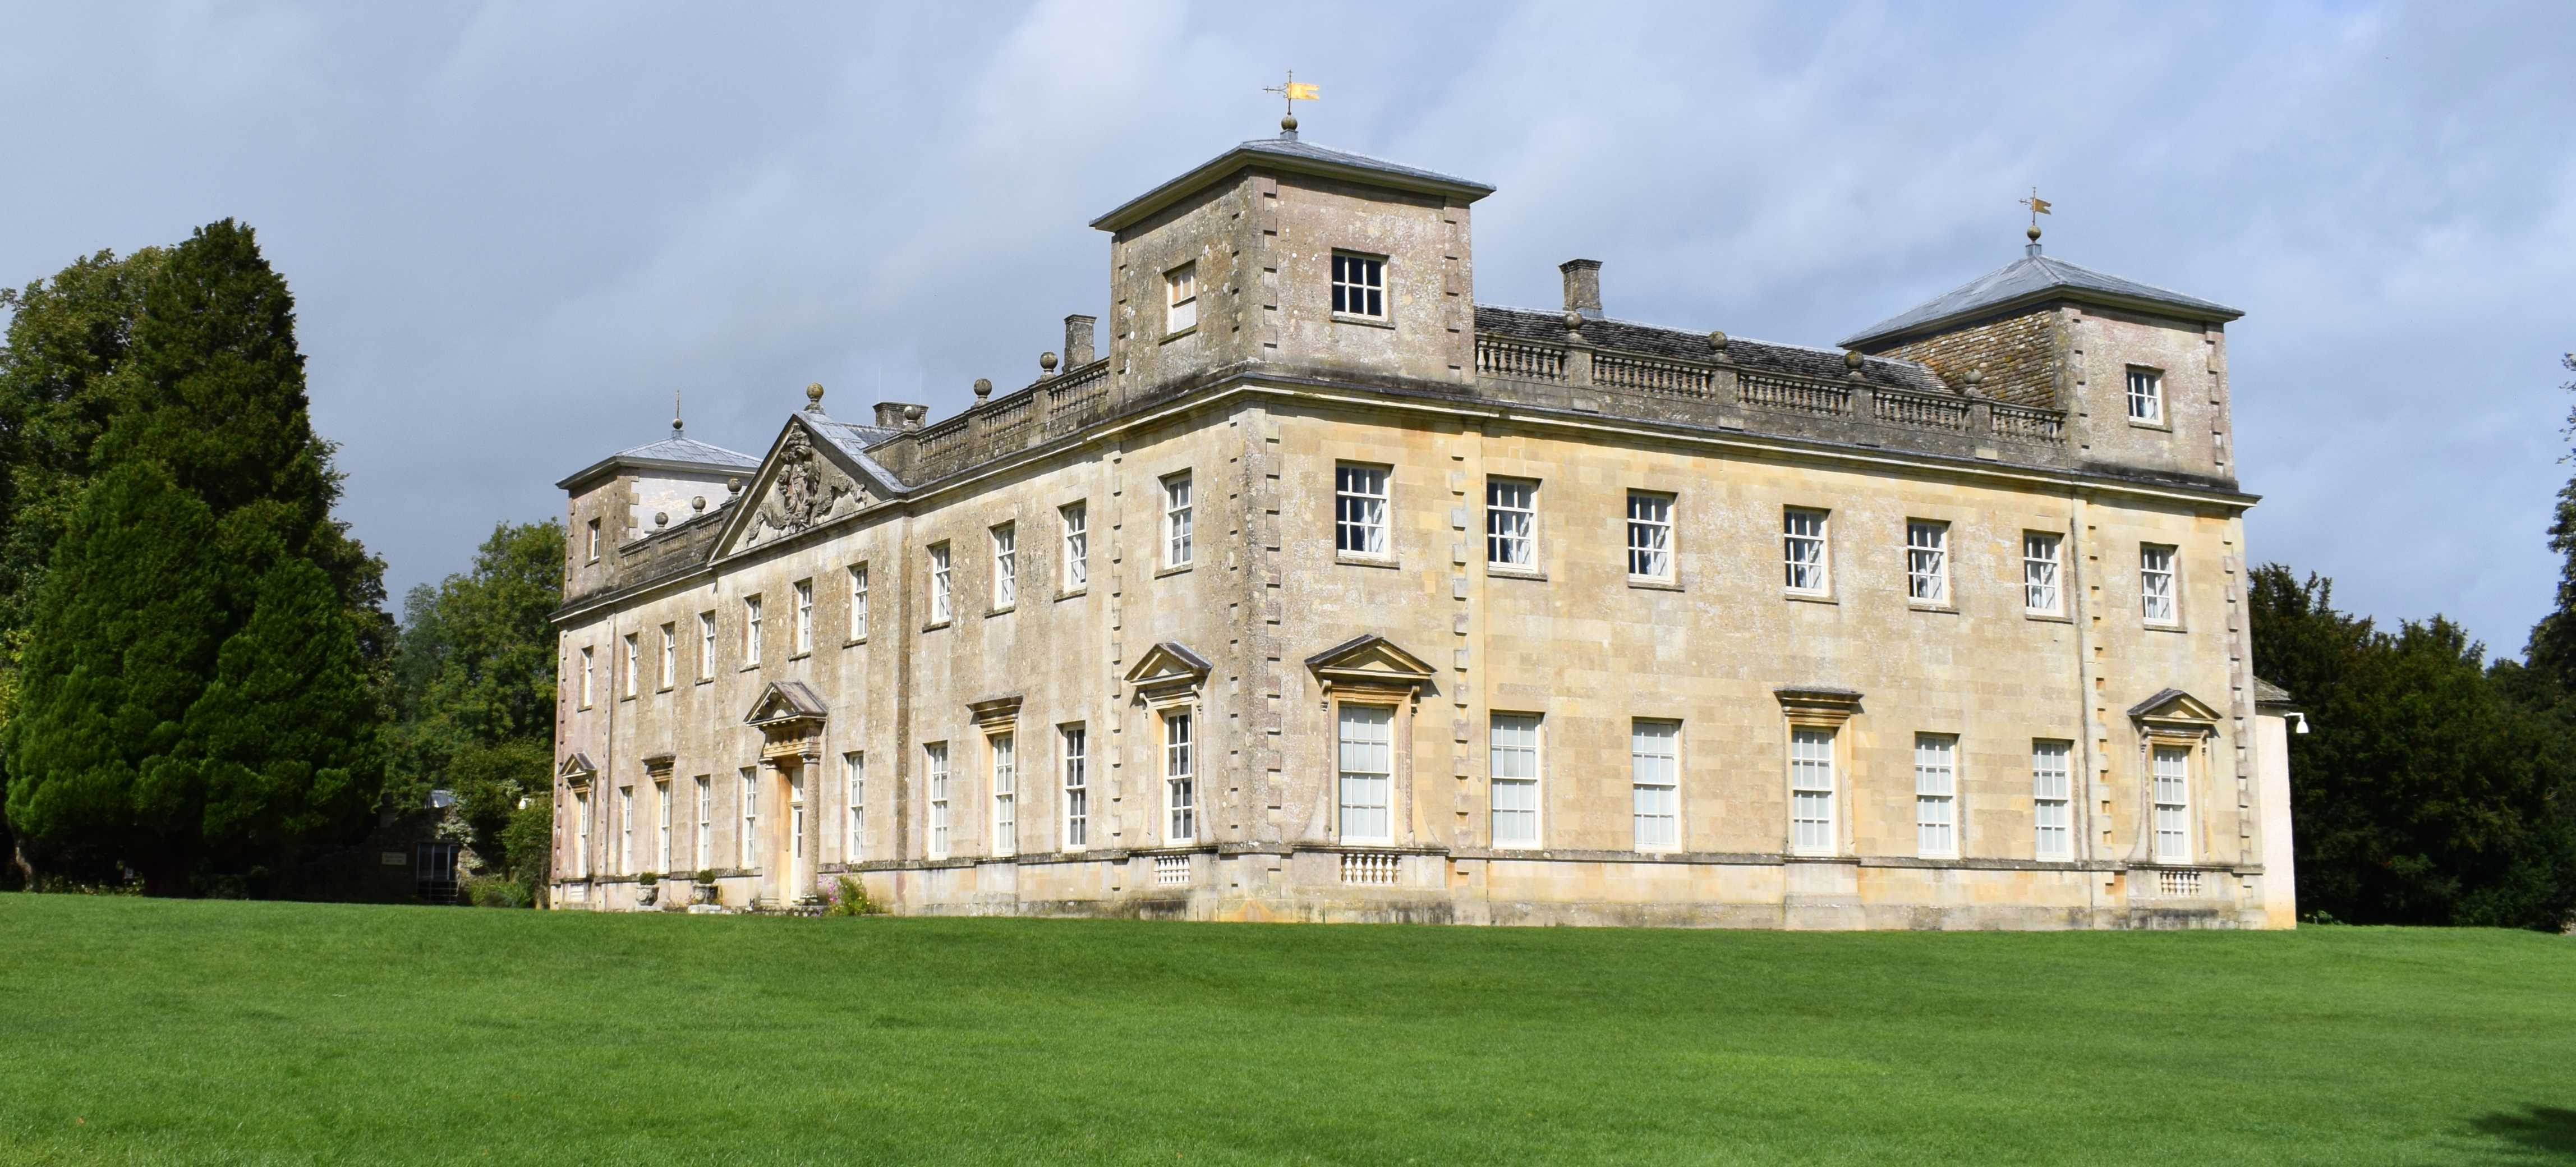 Lydiard House and Park, Wiltshire, England